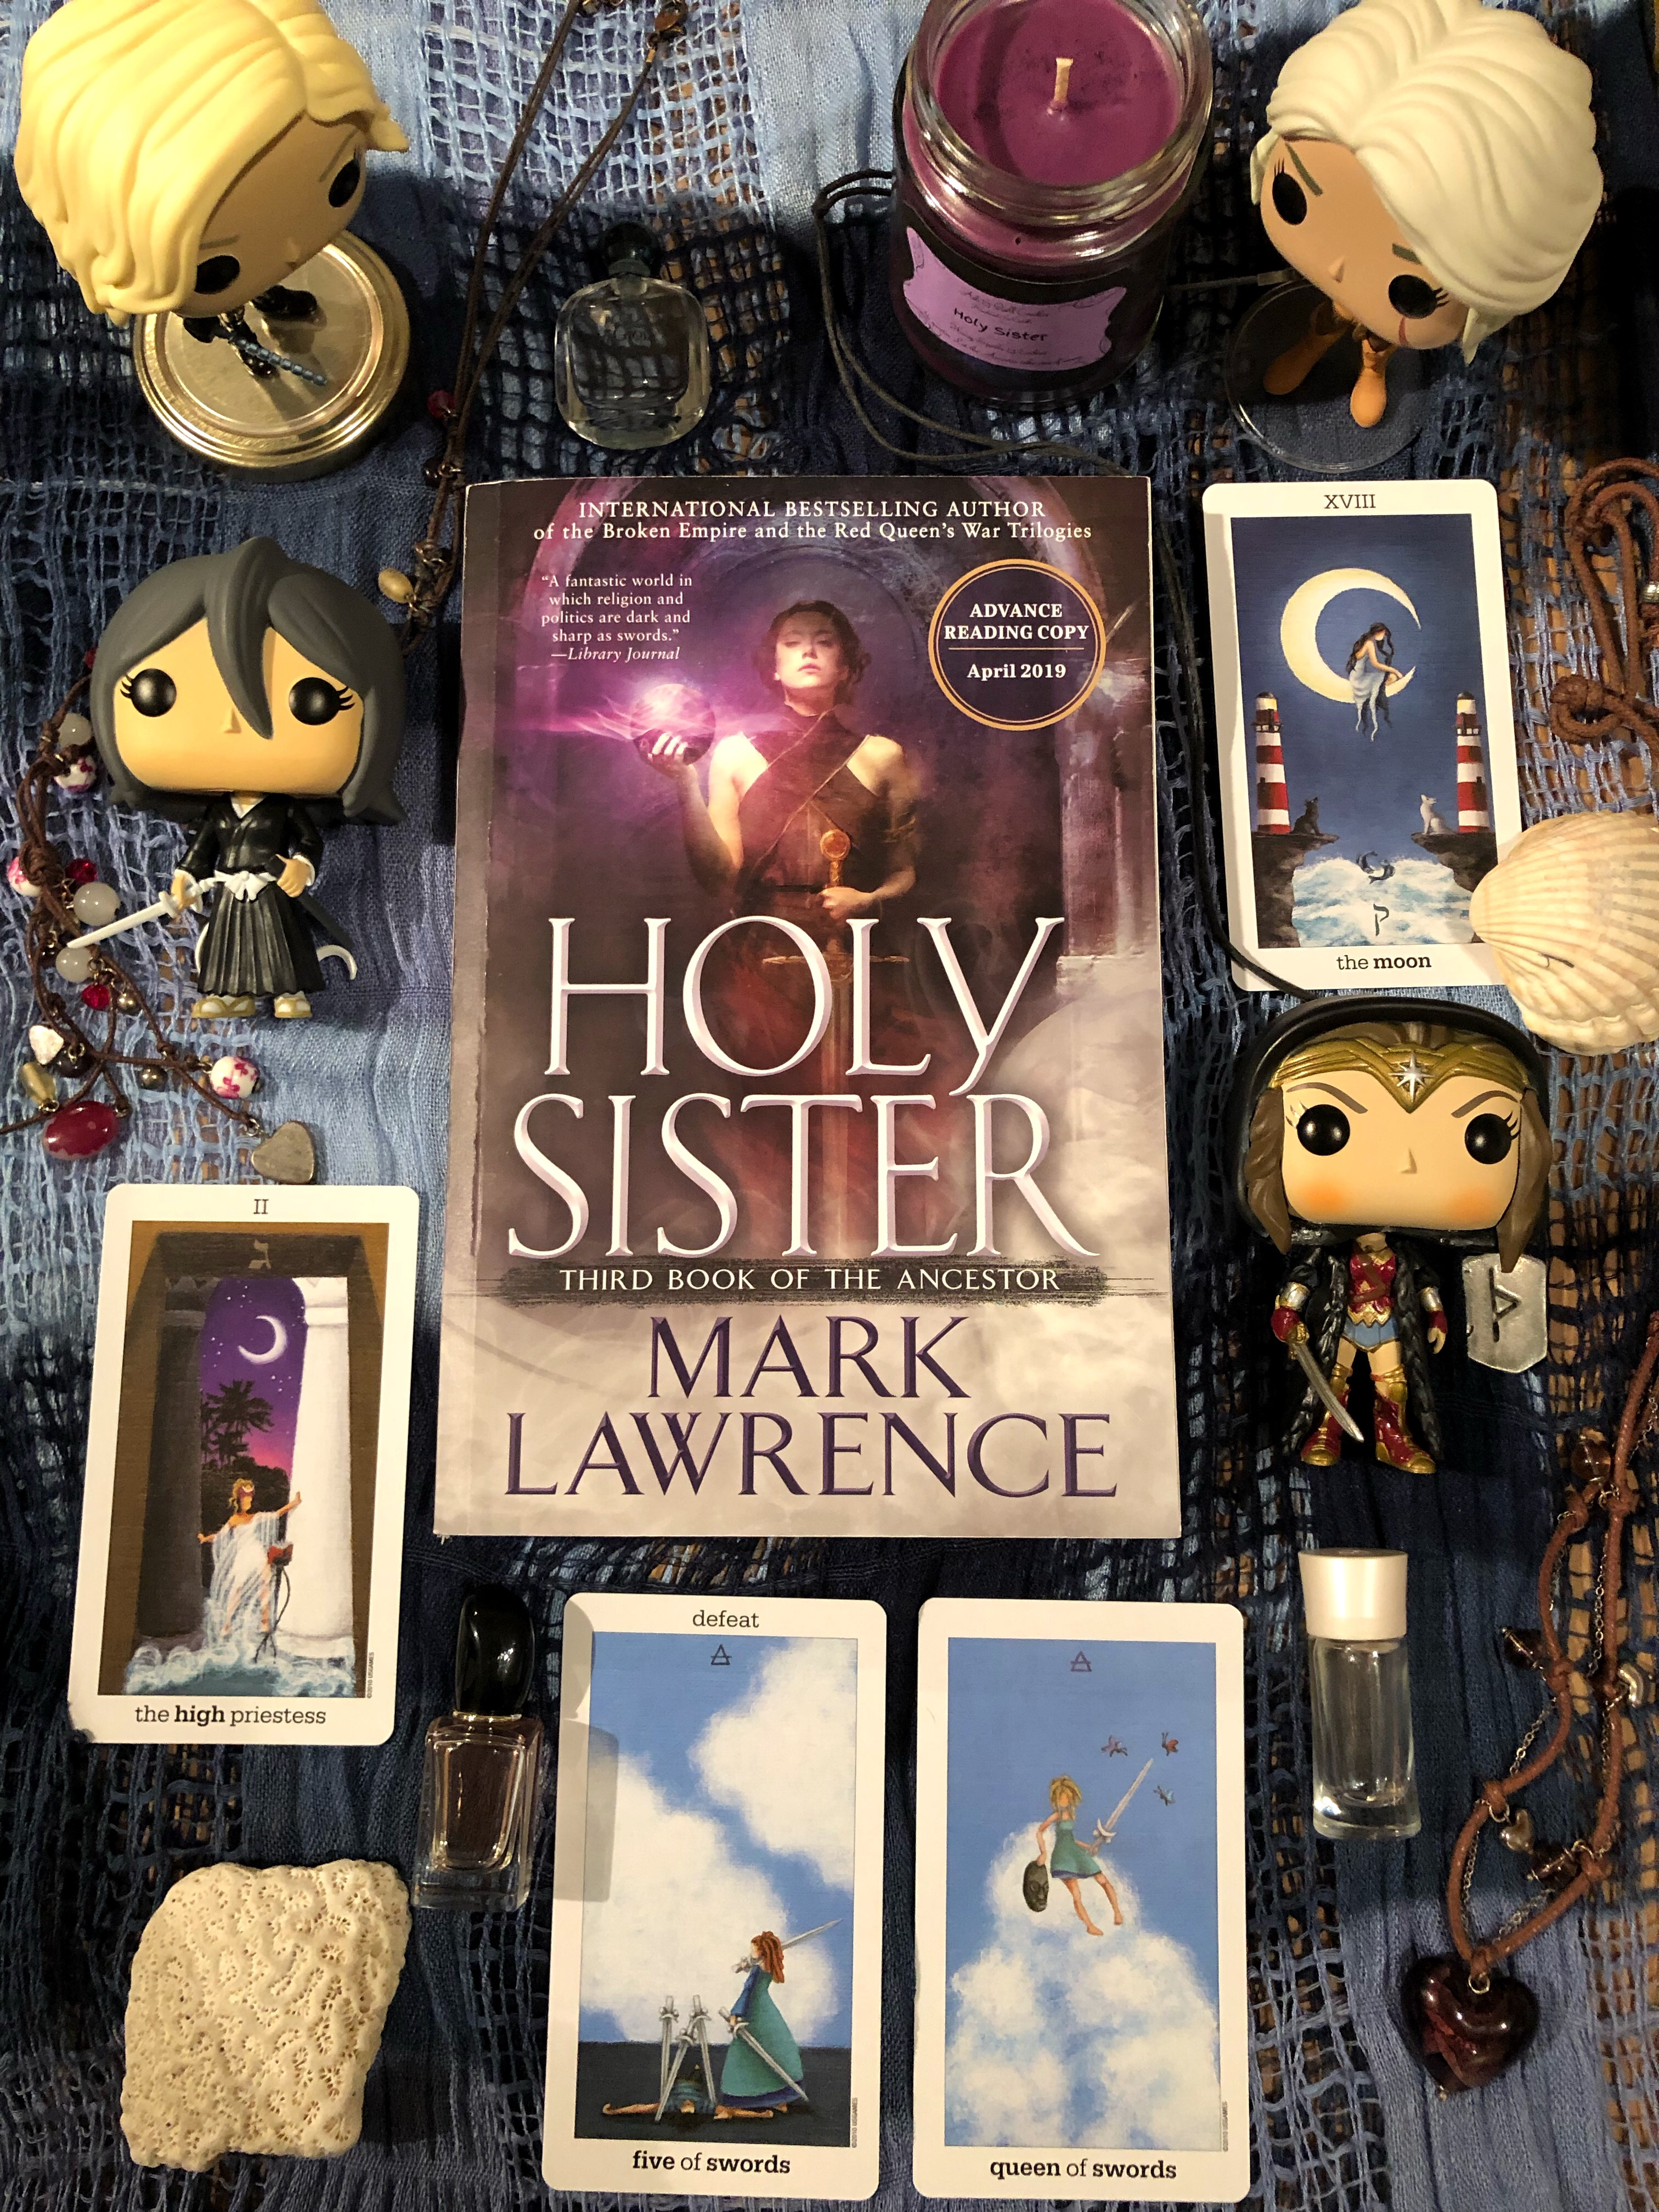 Signed Holy Sister ARC giveaway – that thorn guy